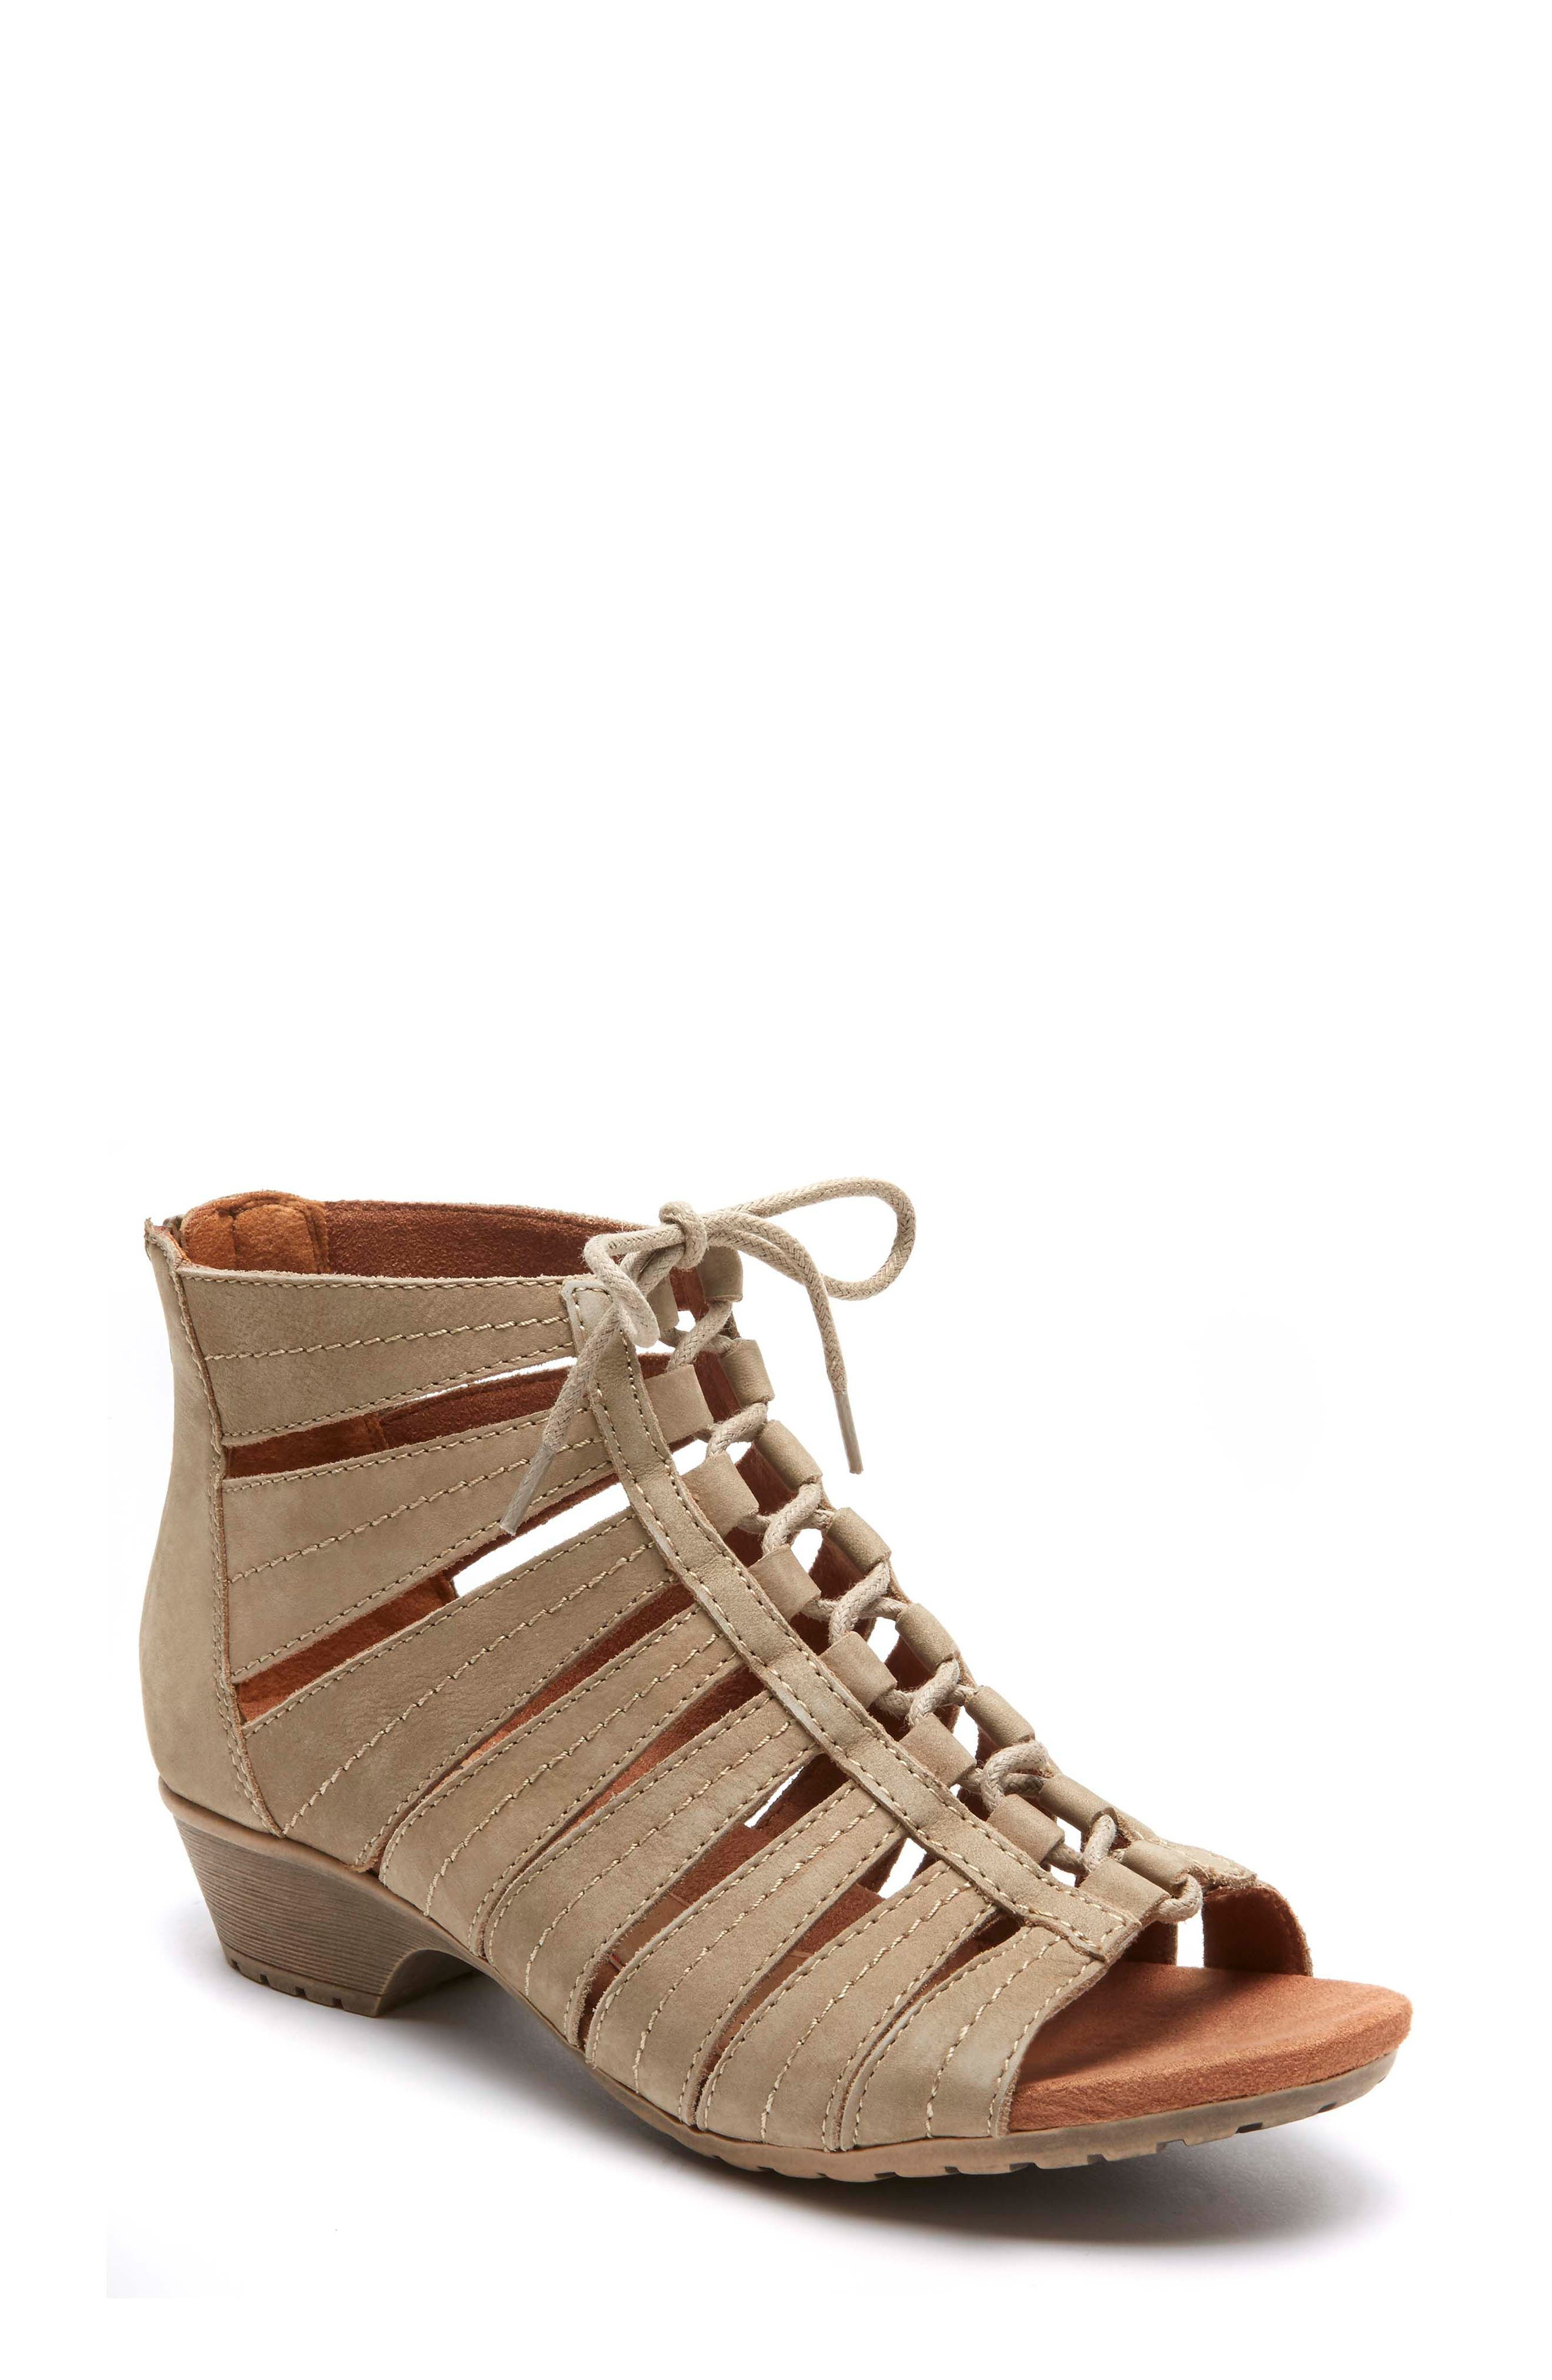 'Gabby' Lace-Up Sandal,                         Main,                         color,